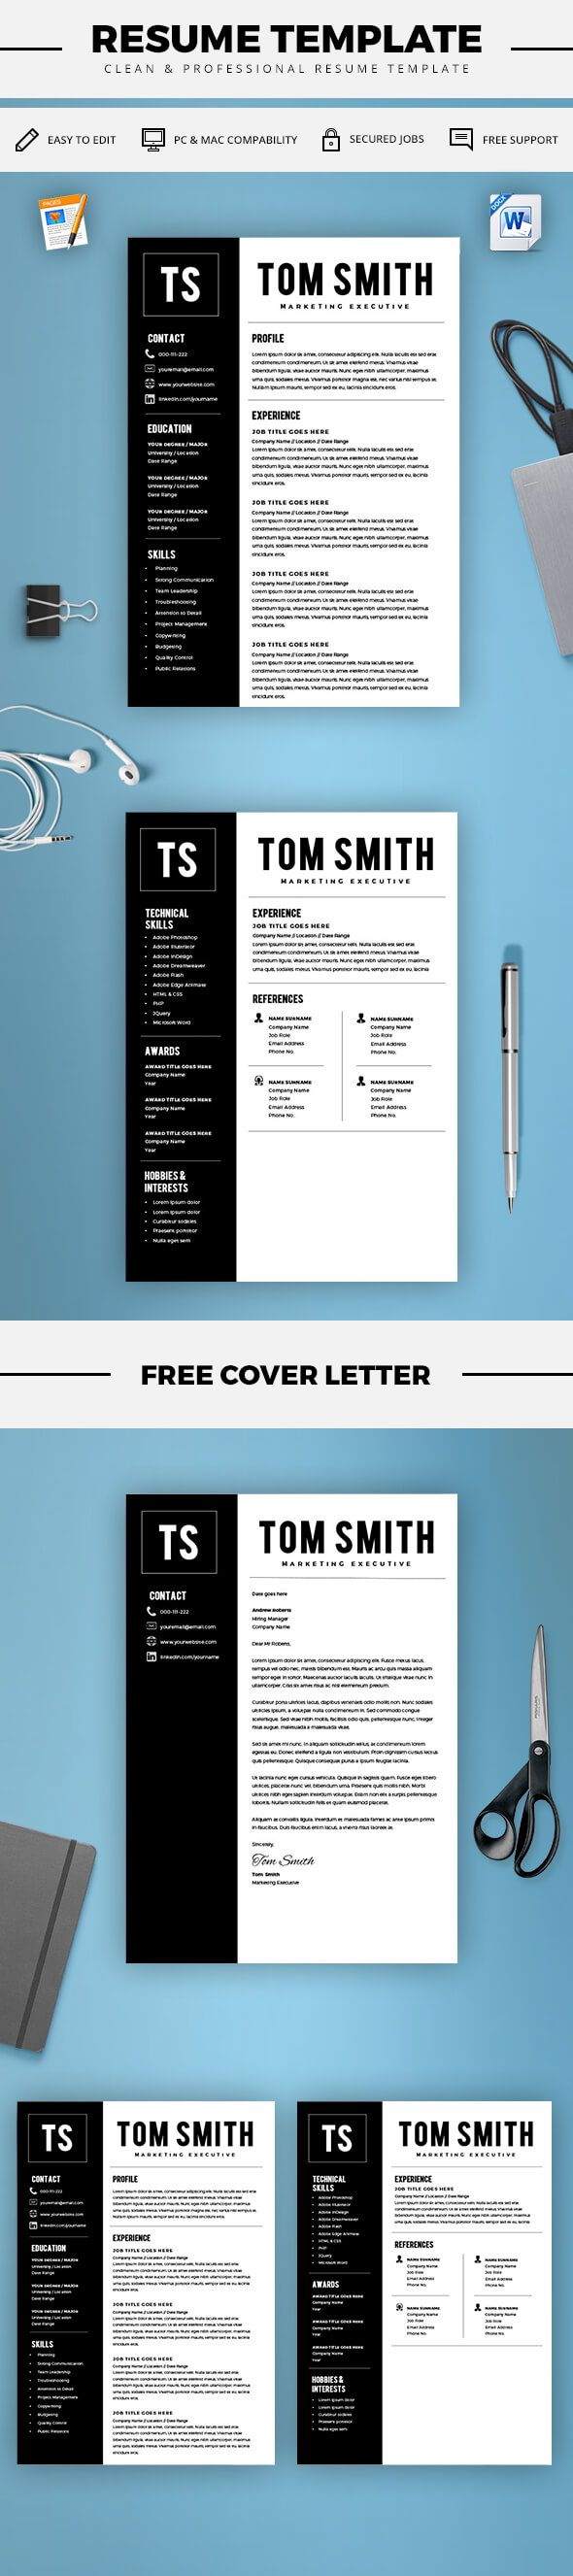 Two Page Resume Template  Resume Builder  Cv Template  Free Cover